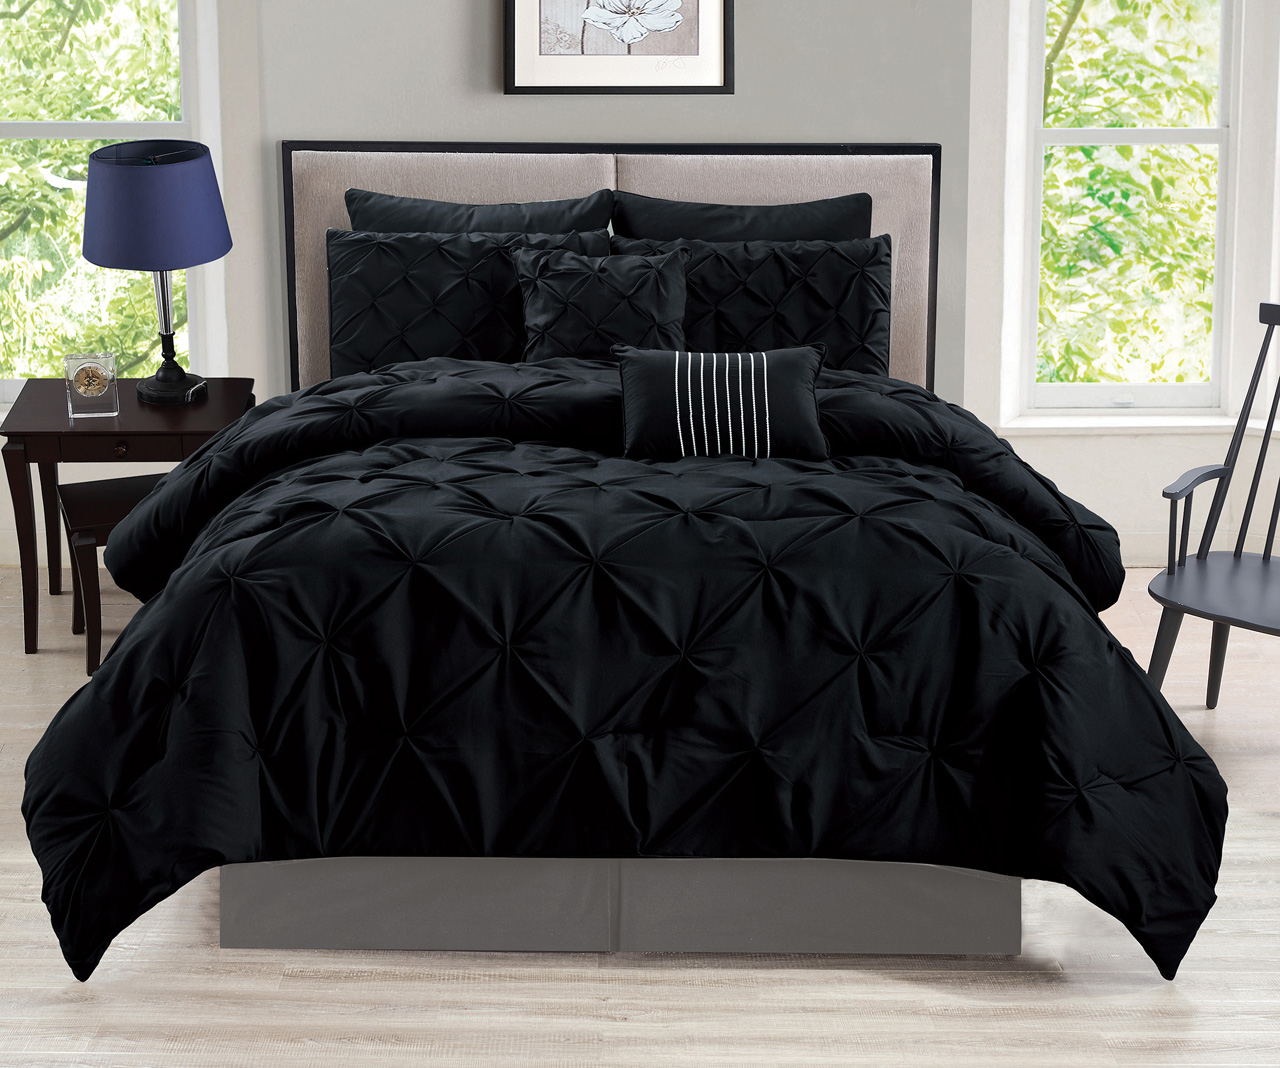 12 Piece Rochelle Pinched Pleat Black Bed In A Bag W/600TC Cotton Sheet Set  Cal King